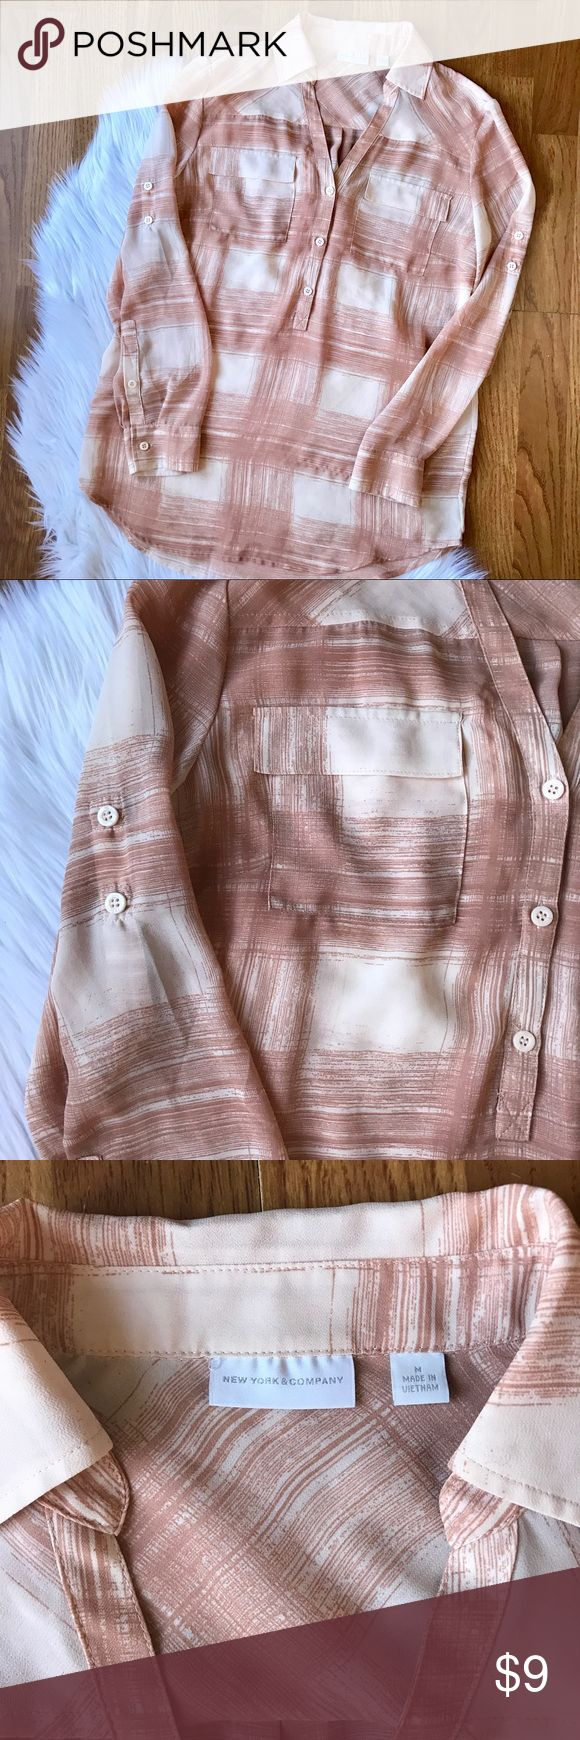 Semi Sheer blush  print blouse. Blush and mauve like colored print. Buttons on arm to fold sleeves. Great condition. Semi Sheer. New York & Company Tops Blouses